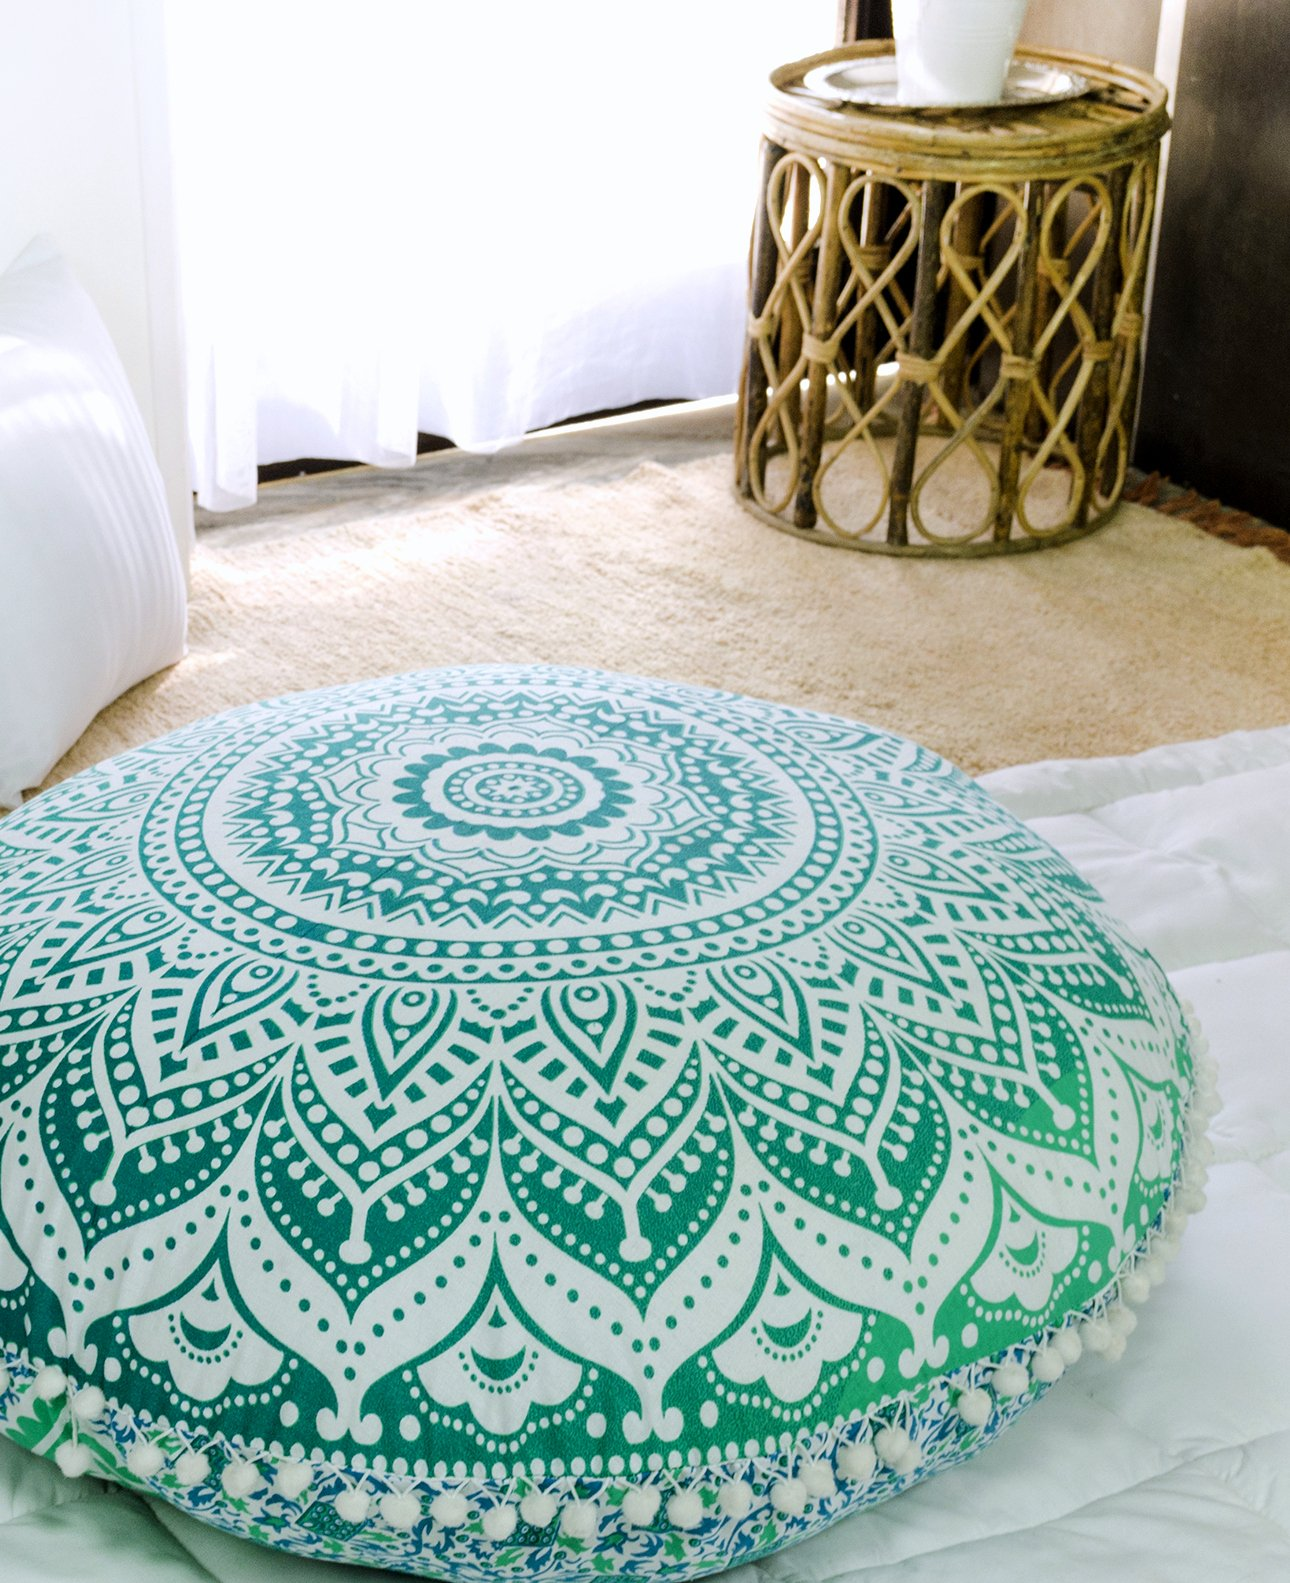 Popular Handicrafts Large Ombre Mandala Round Hippie Floor Pillow - Cushion - Pouf Cover Bohemian Yoga Decor Floor Cushion Case - 32'' Green by Popular Handicrafts (Image #2)